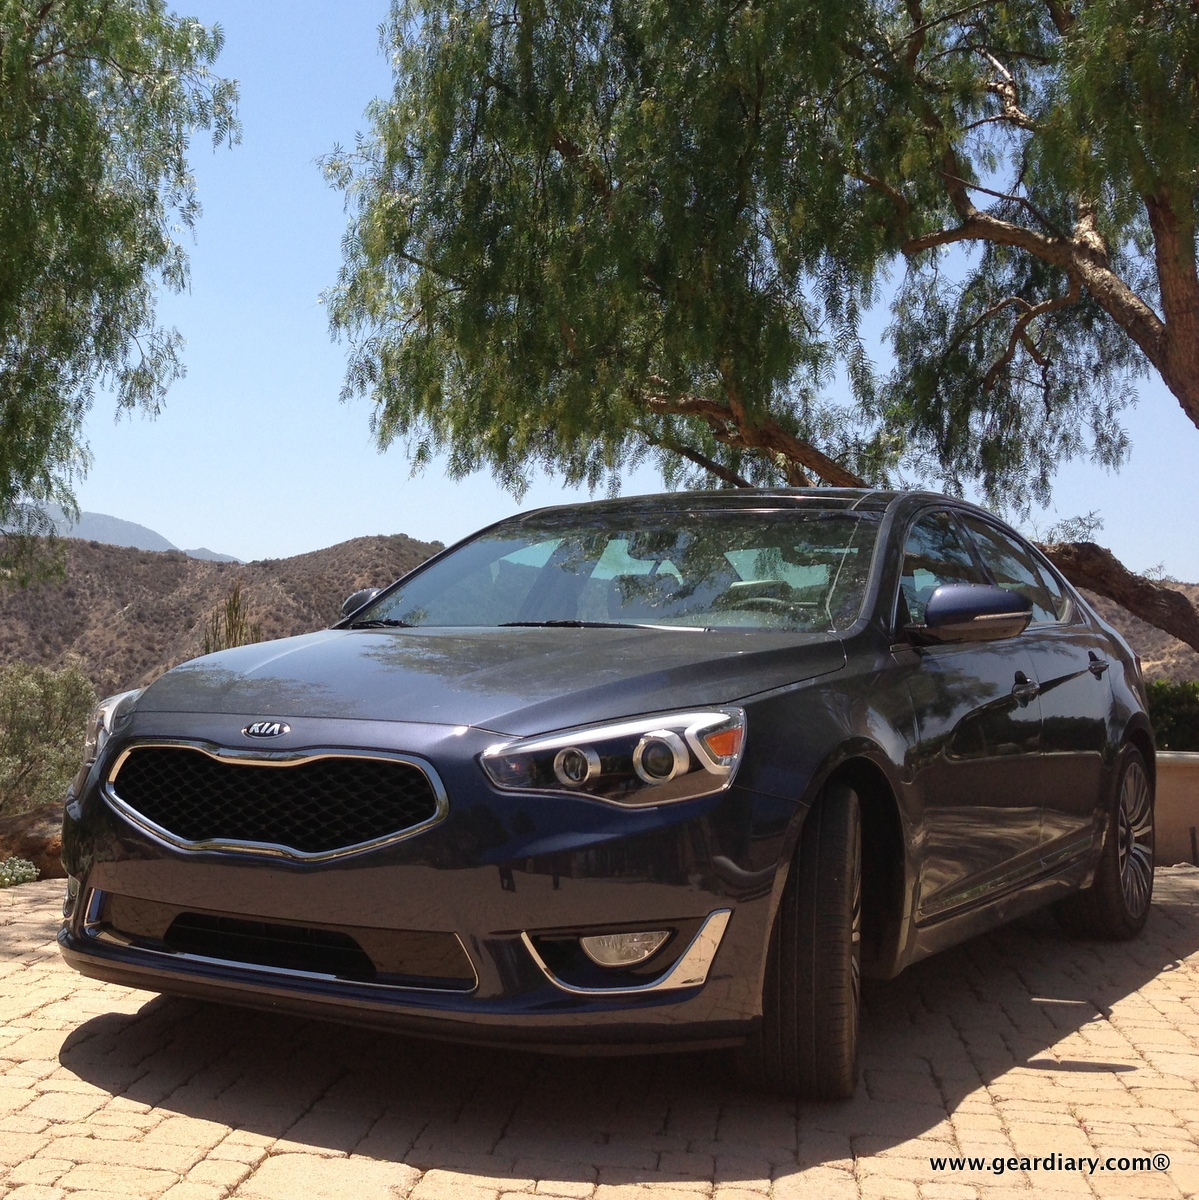 Travel Gear Sedans Kia Cars Apple TV